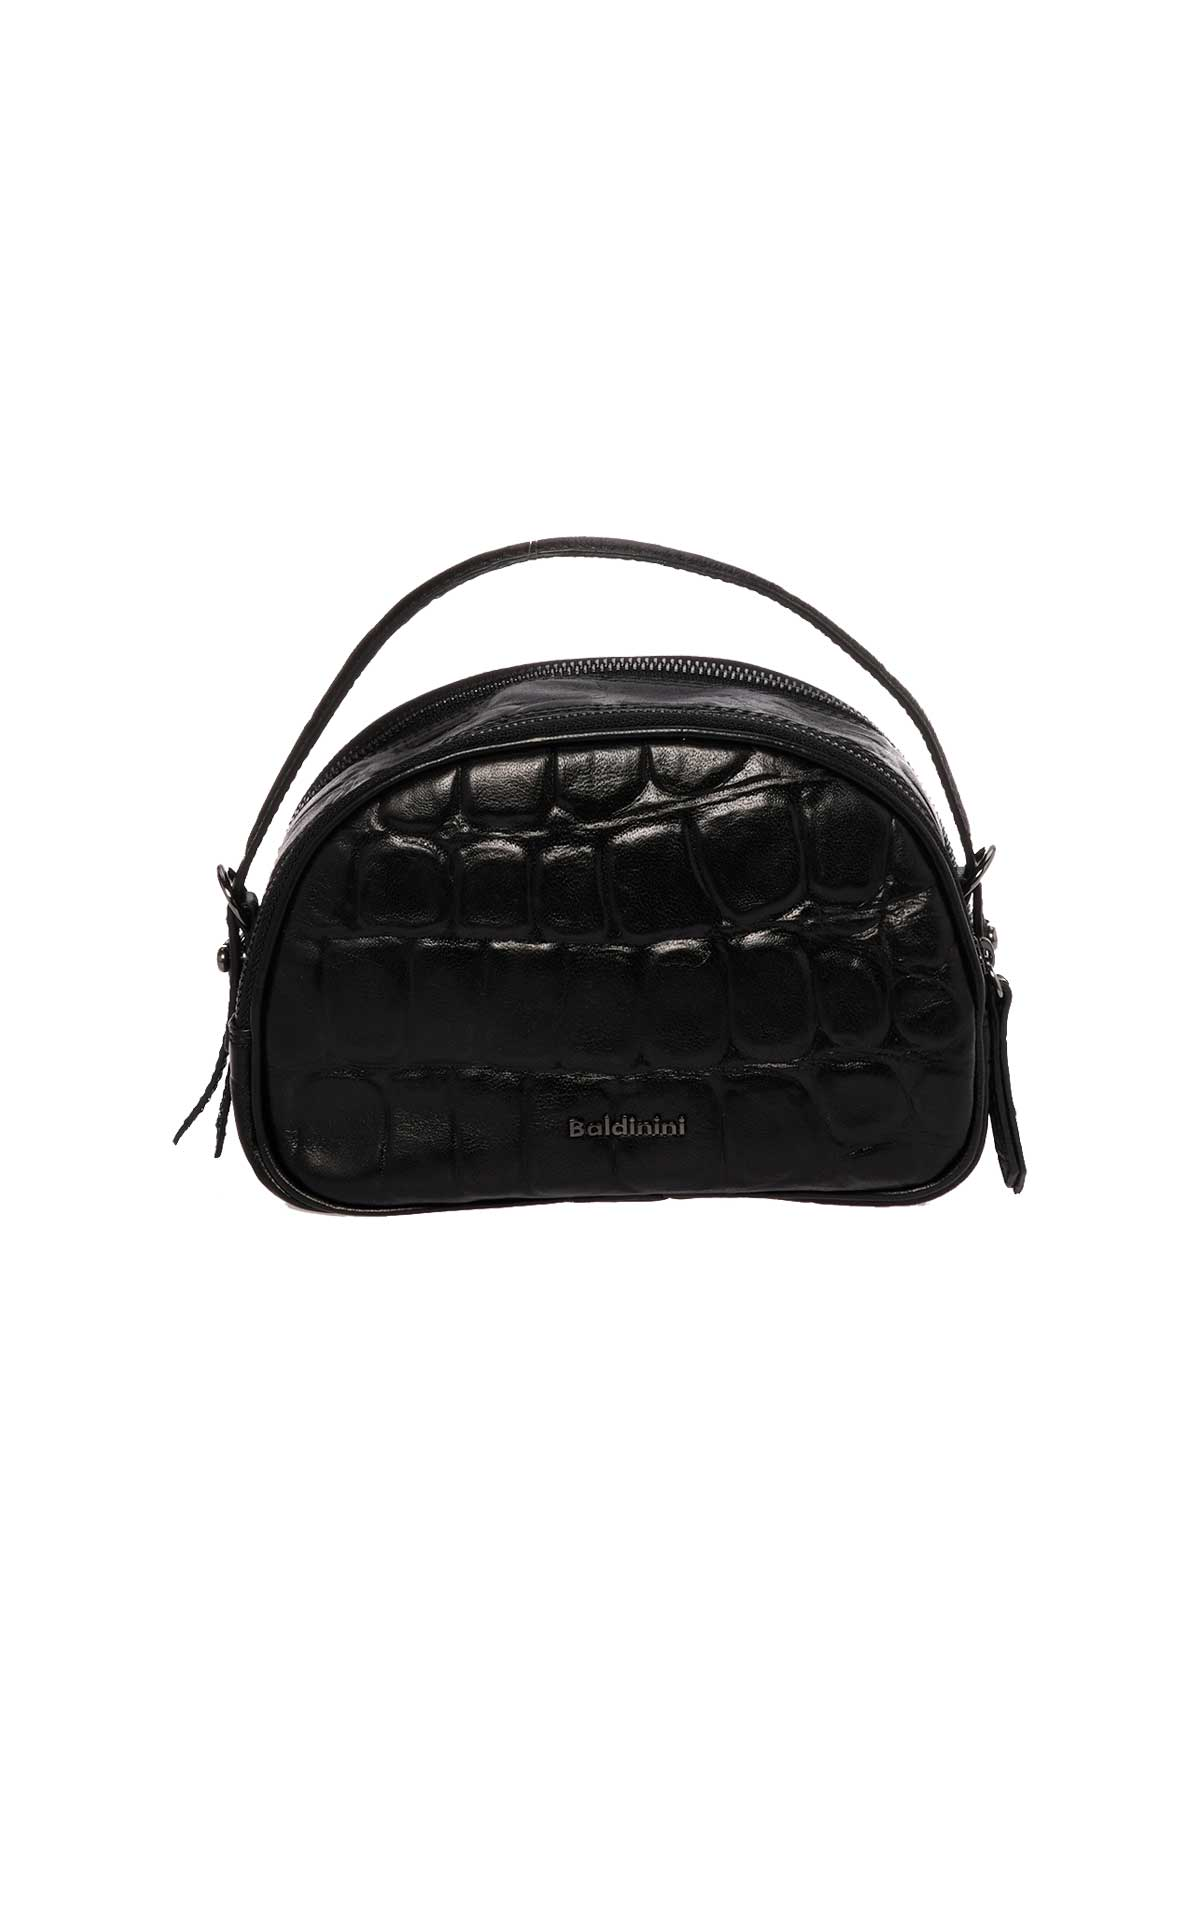 Small black leather bag croco Baldinini